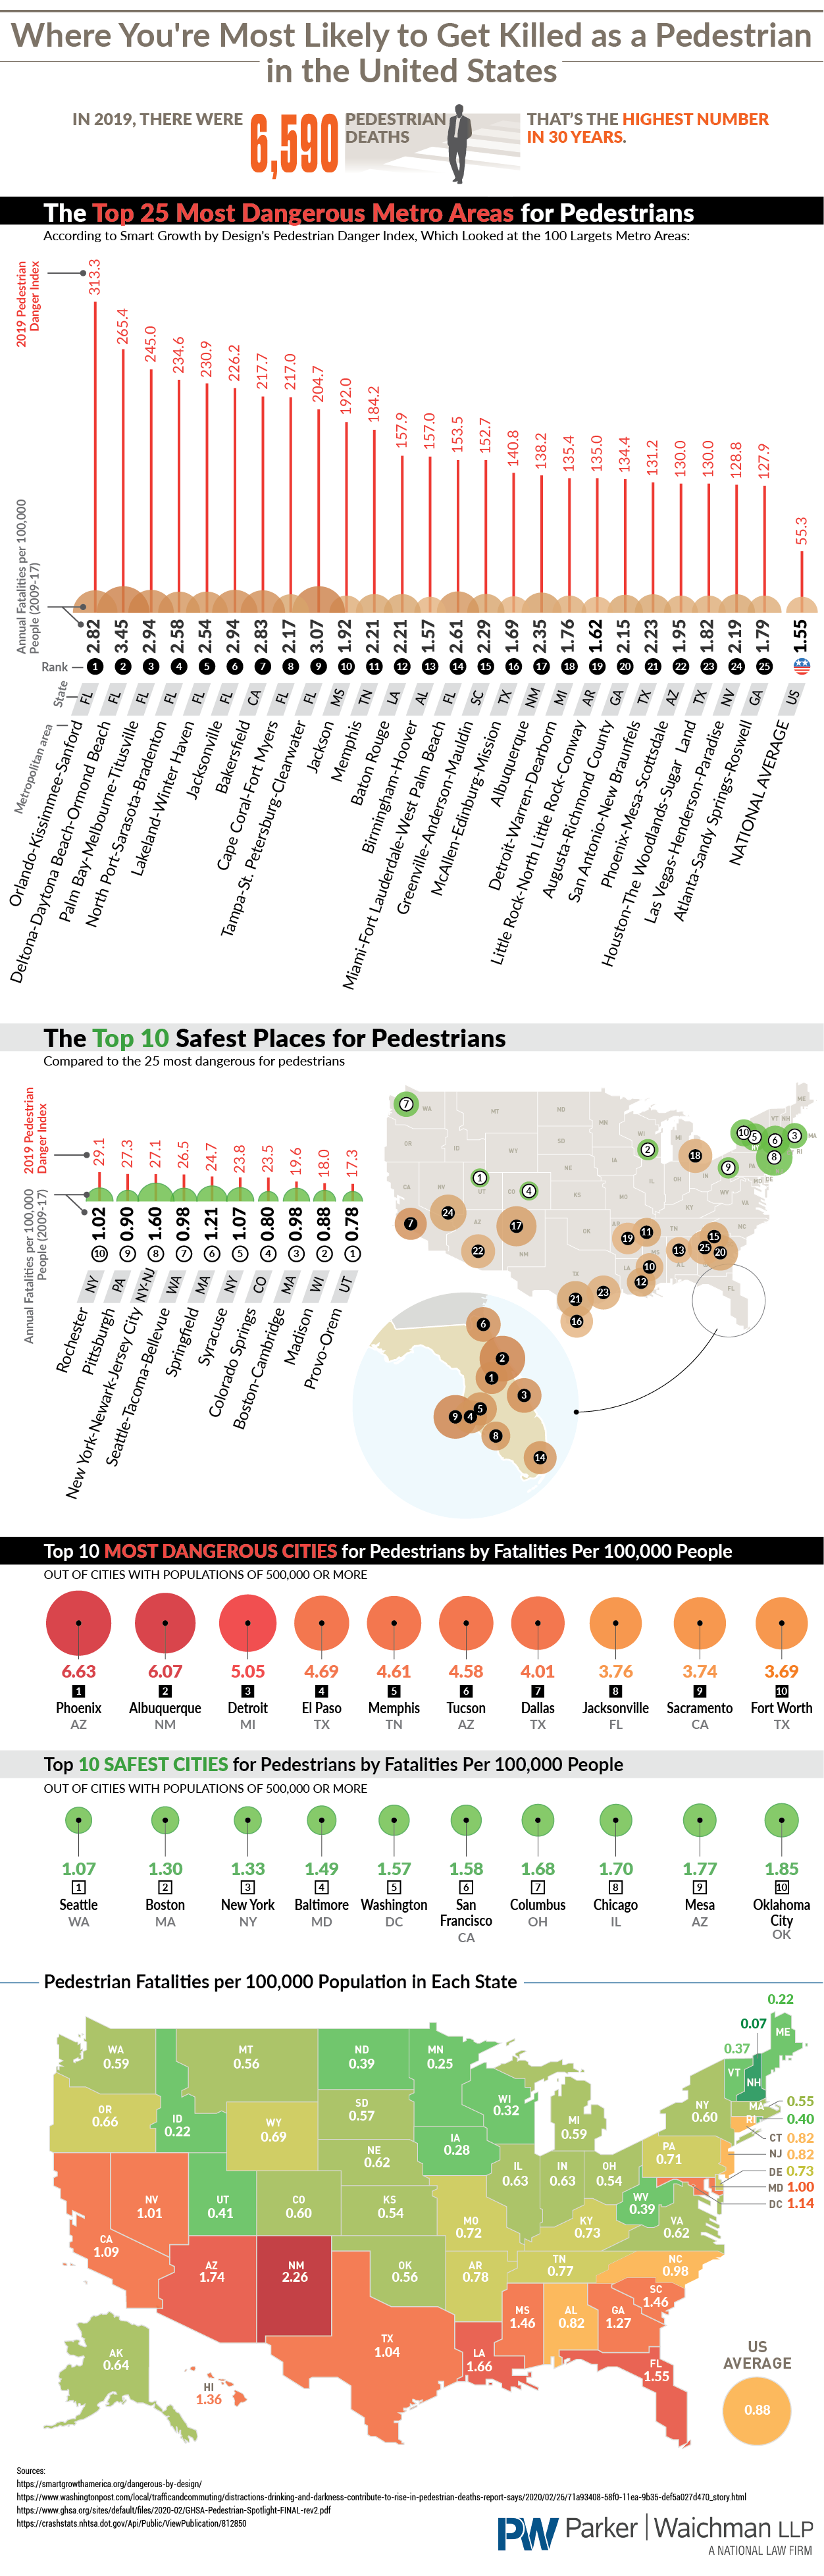 Where You're Most Likely to Get Killed as a Pedestrian in the United States